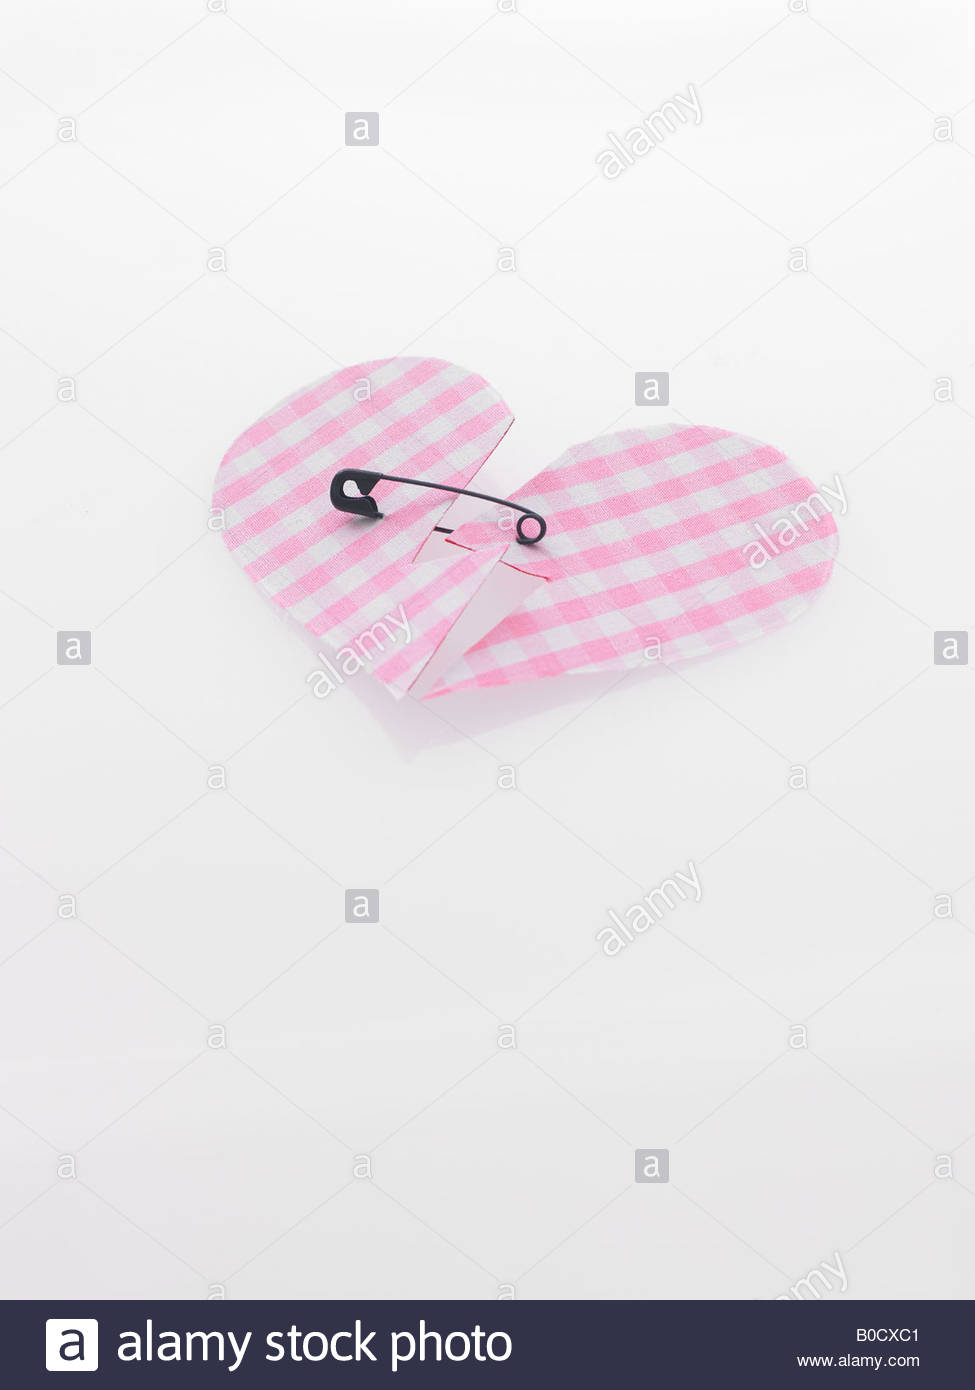 Broken heart pinned with safety pin - Stock Image